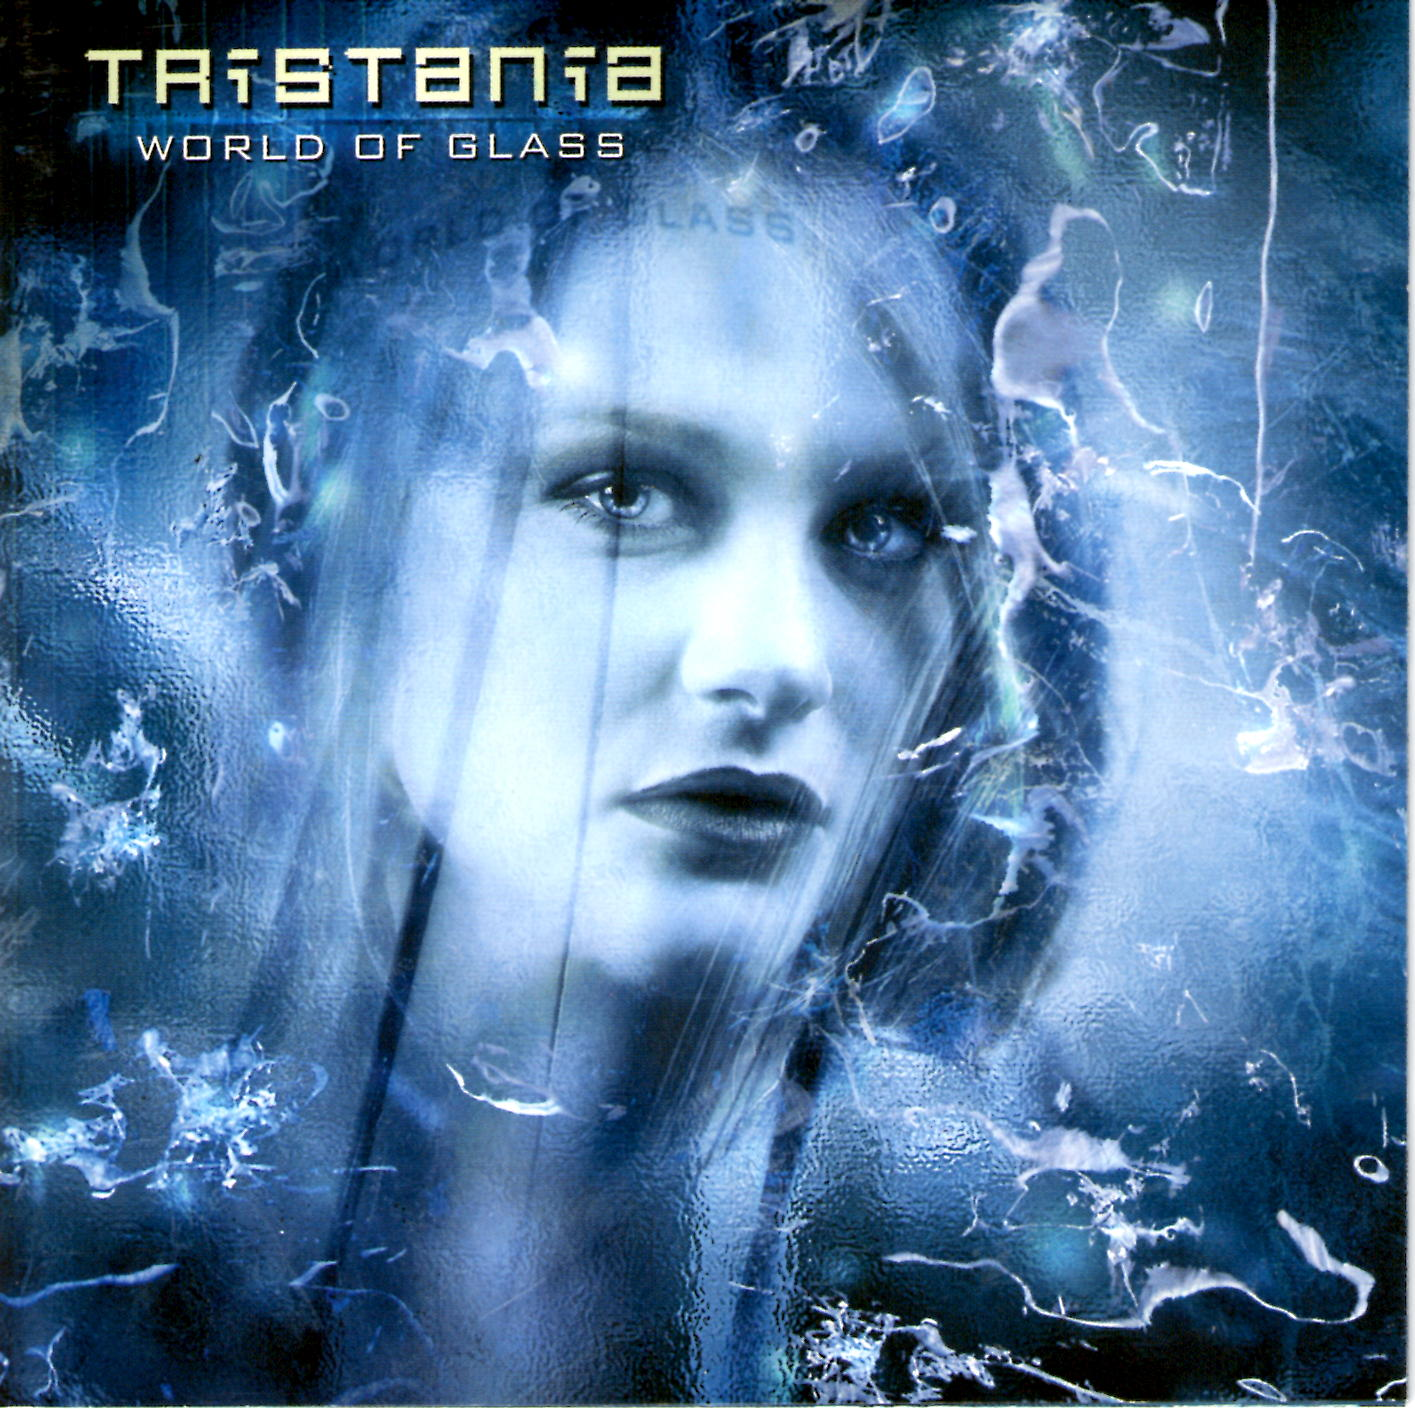 Tristania: World of Glass (2001) Book Cover